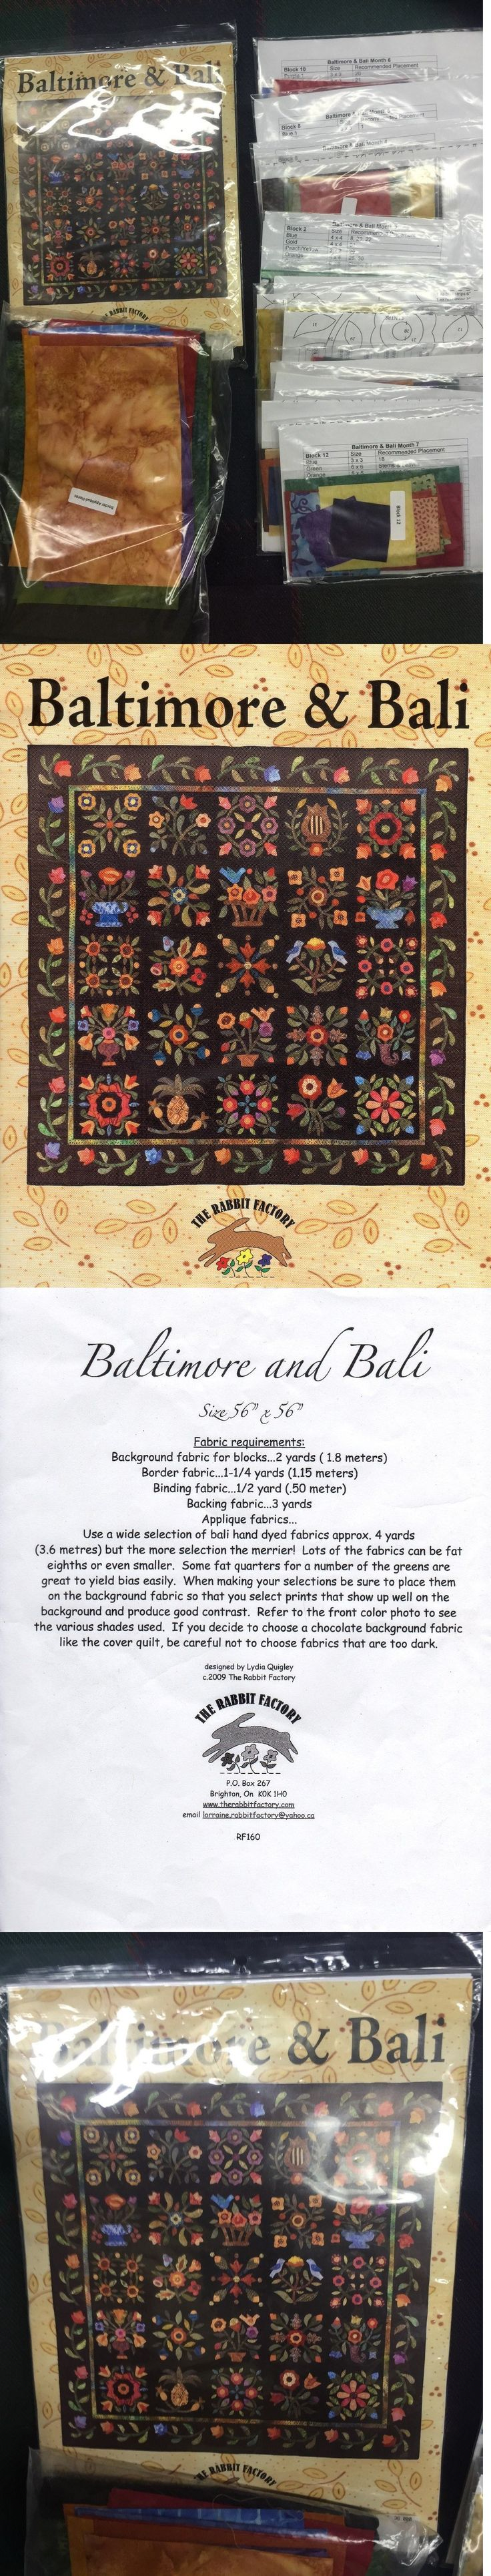 Quilting Kits 19160: Baltimore And Bali Bom Quilt Package - Rabbit Factory - Patterns And Fabric -> BUY IT NOW ONLY: $190 on eBay!